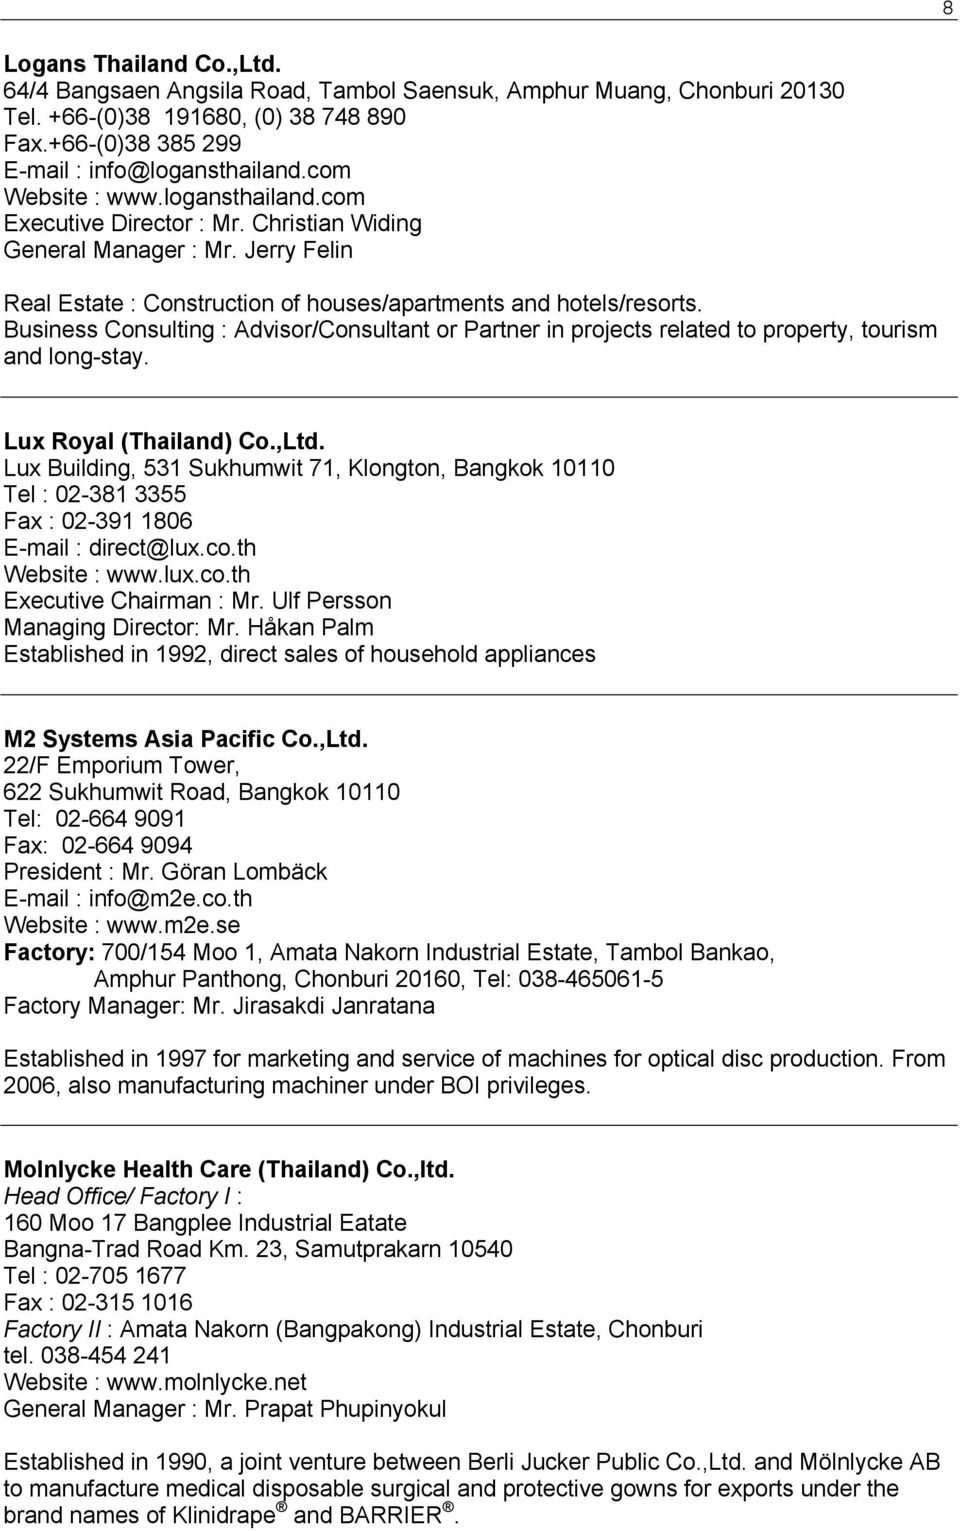 LIST OF COMPANIES WITH SWEDISH INTERESTS IN THAILAND - PDF